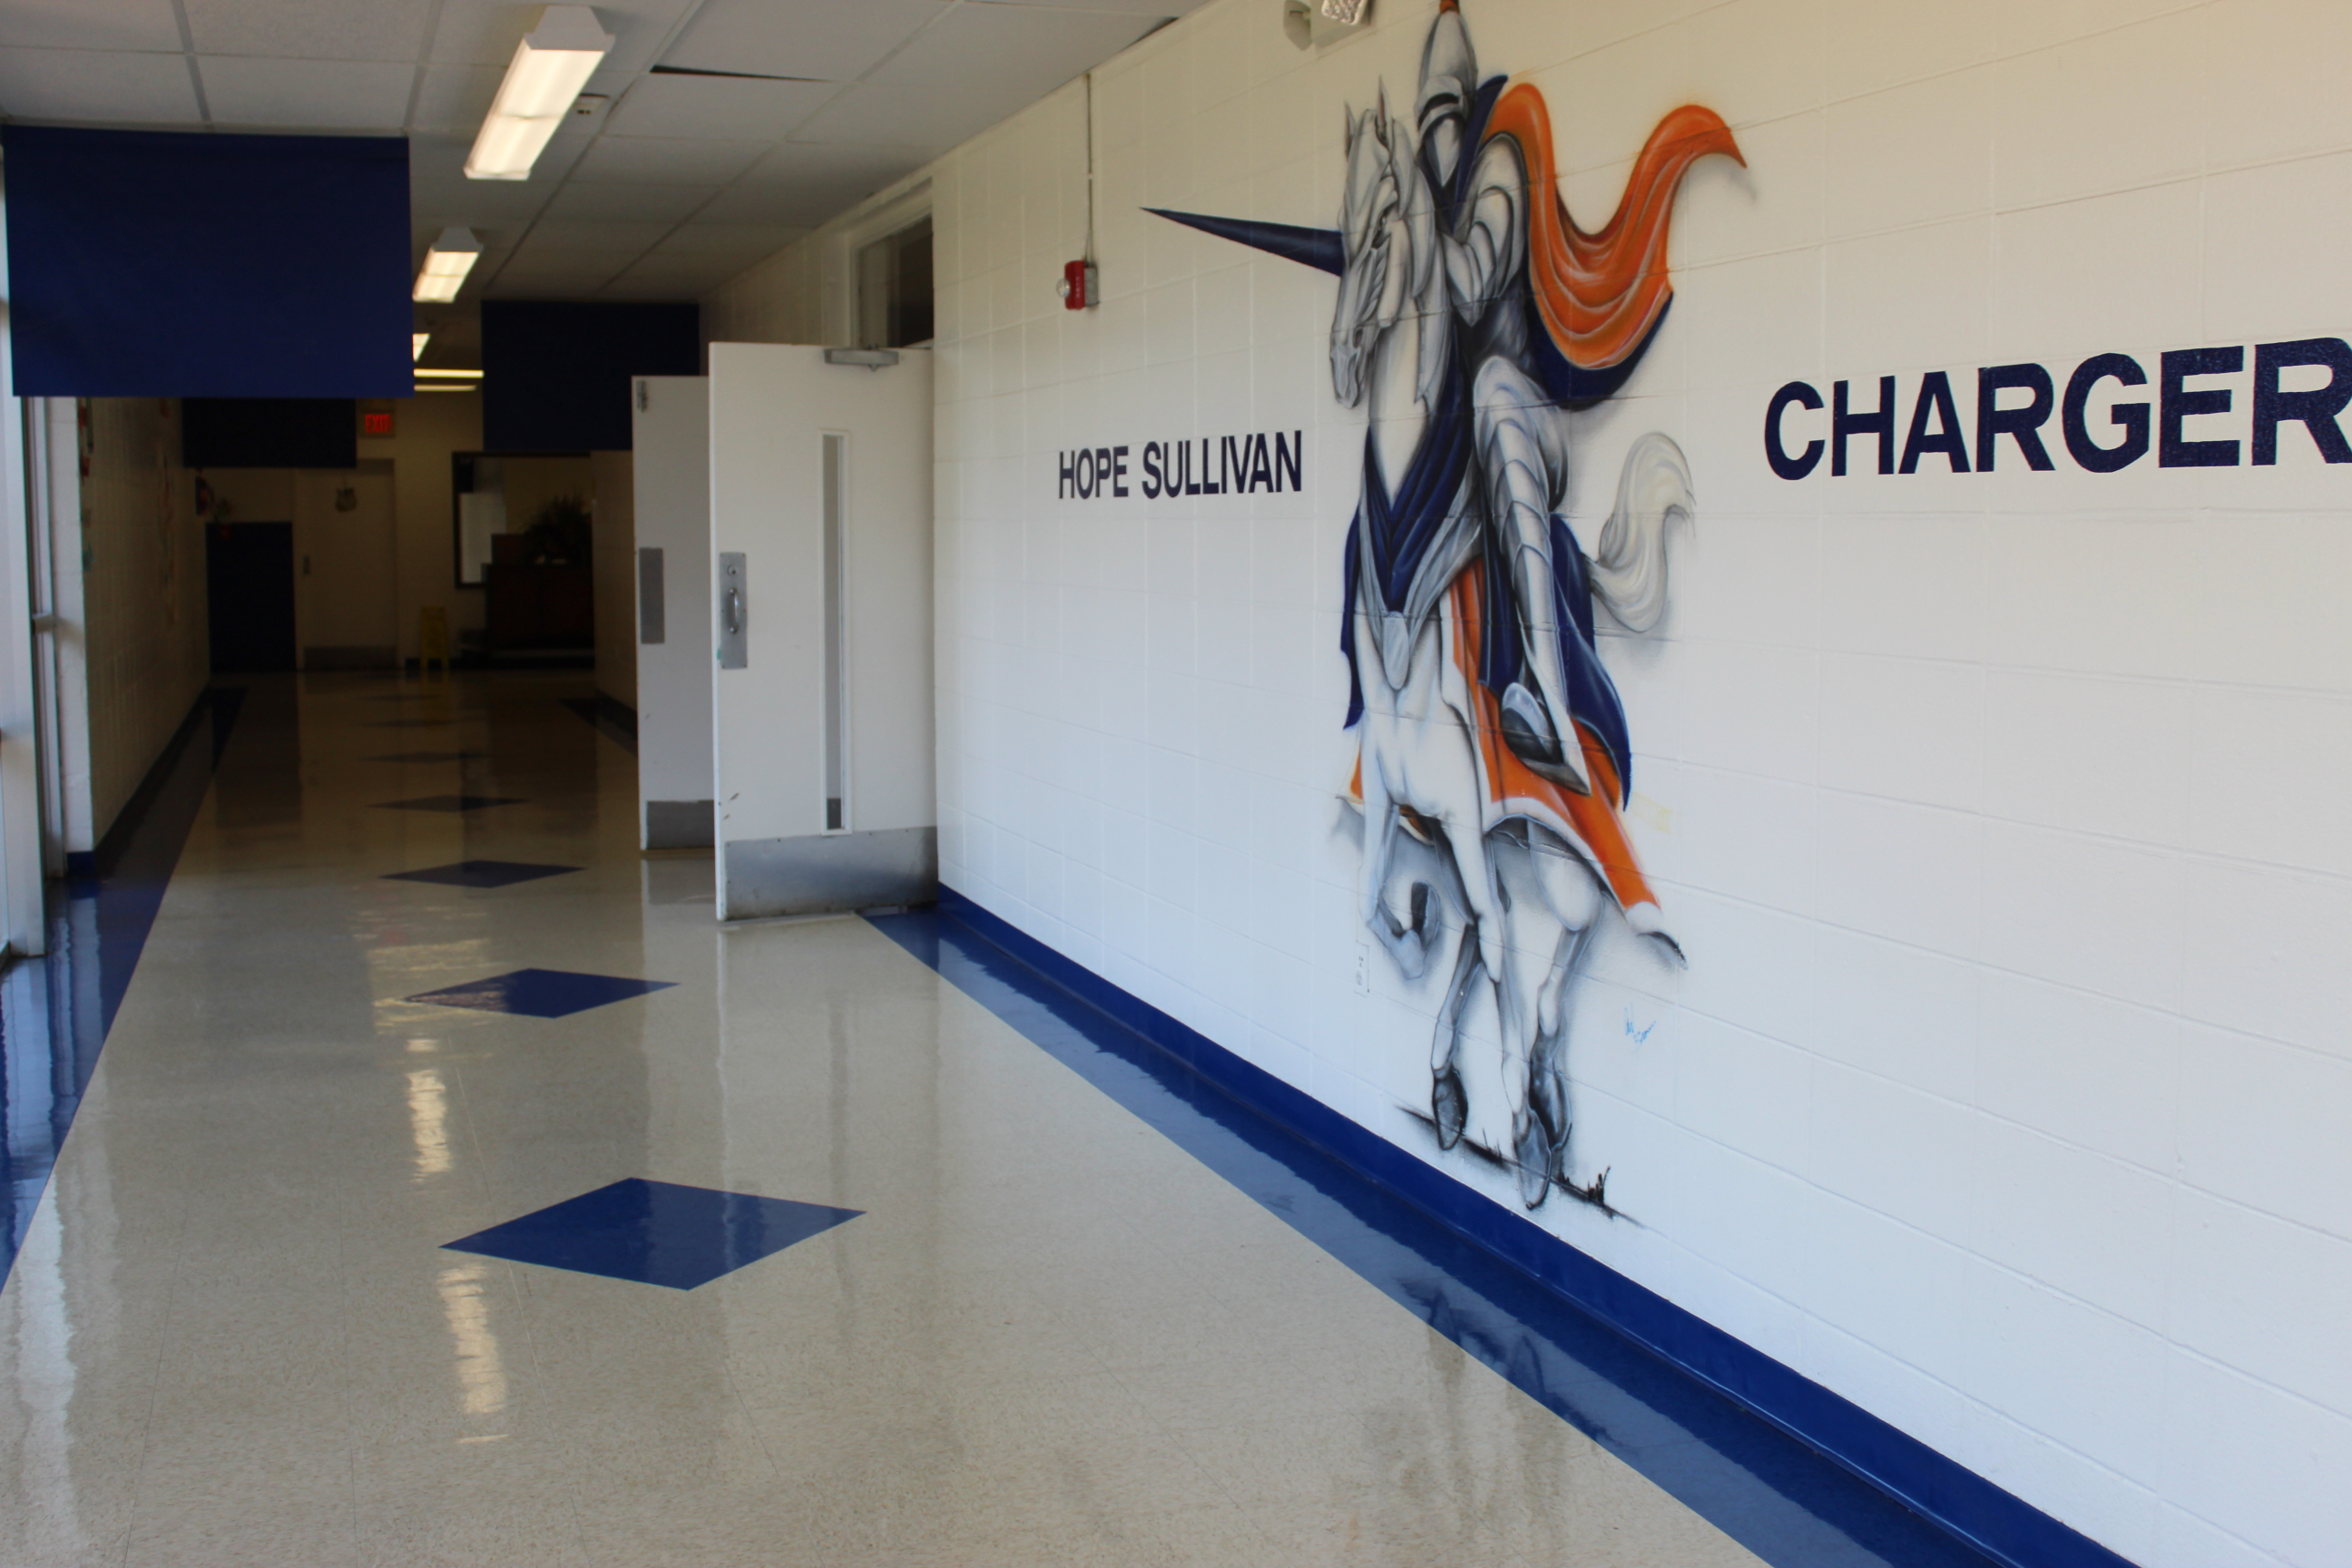 DeSoto County Schools conducts construction projects over the summer to upgrade and improve facilities, according to Jerry White, director of plant maintenance.